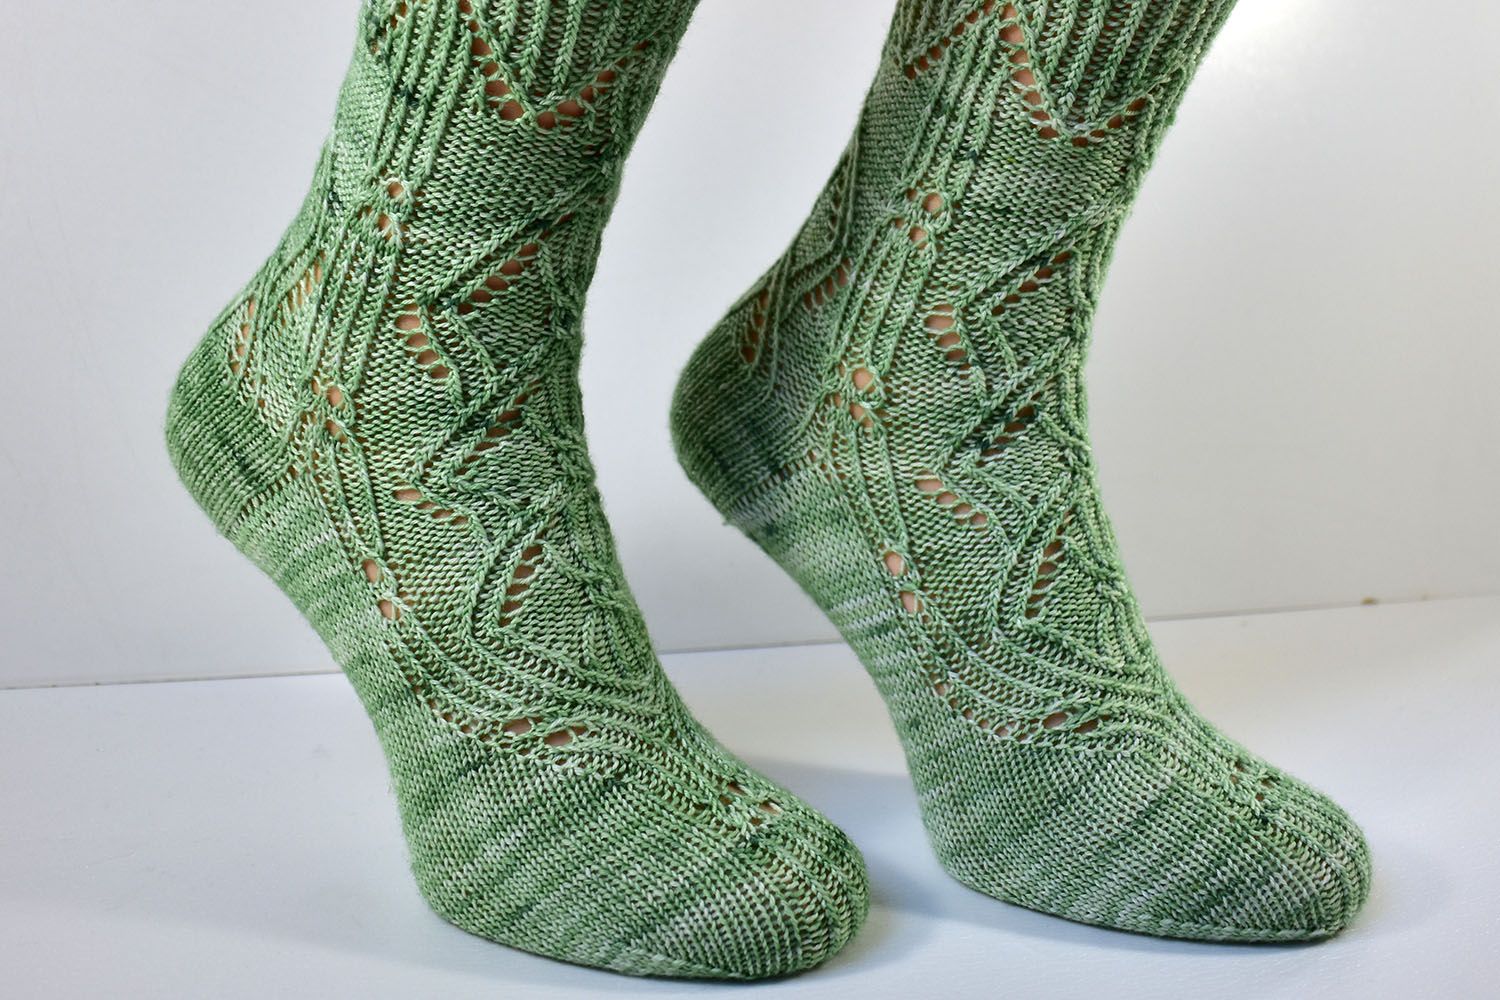 Side detail of Triforium sock pattern with cables and lace